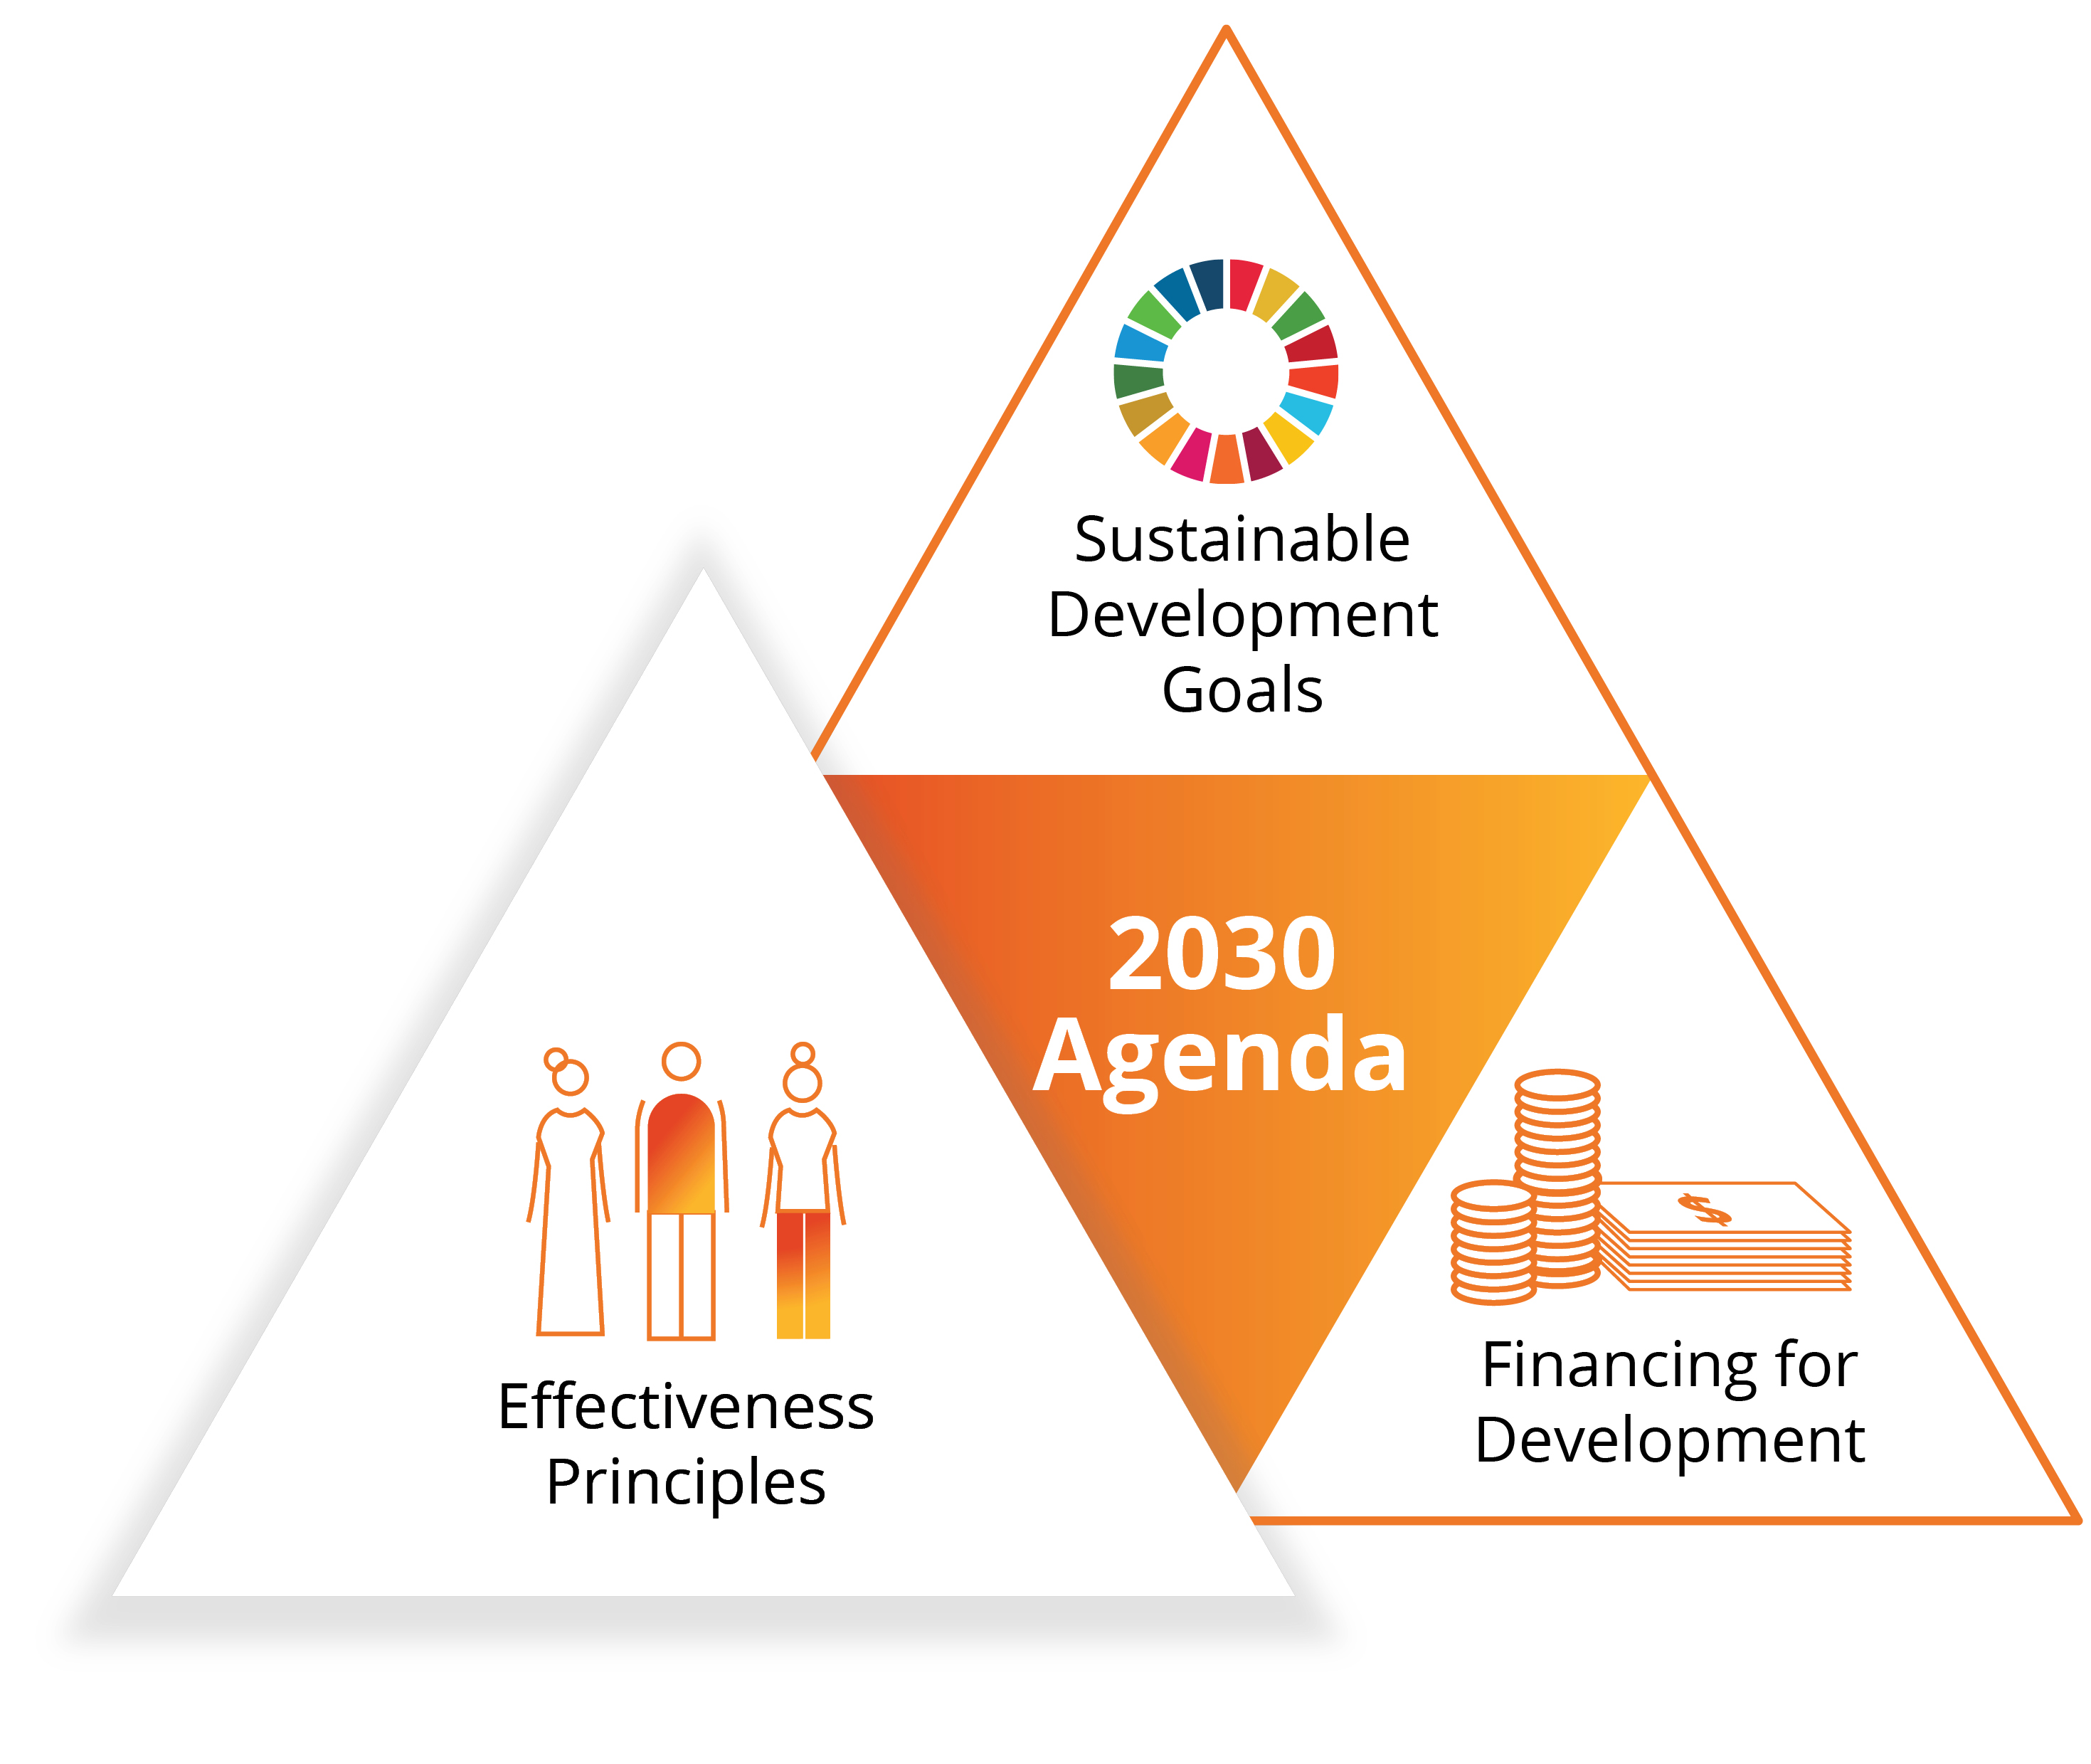 2030 Agenda report cover for the sustainable development goals